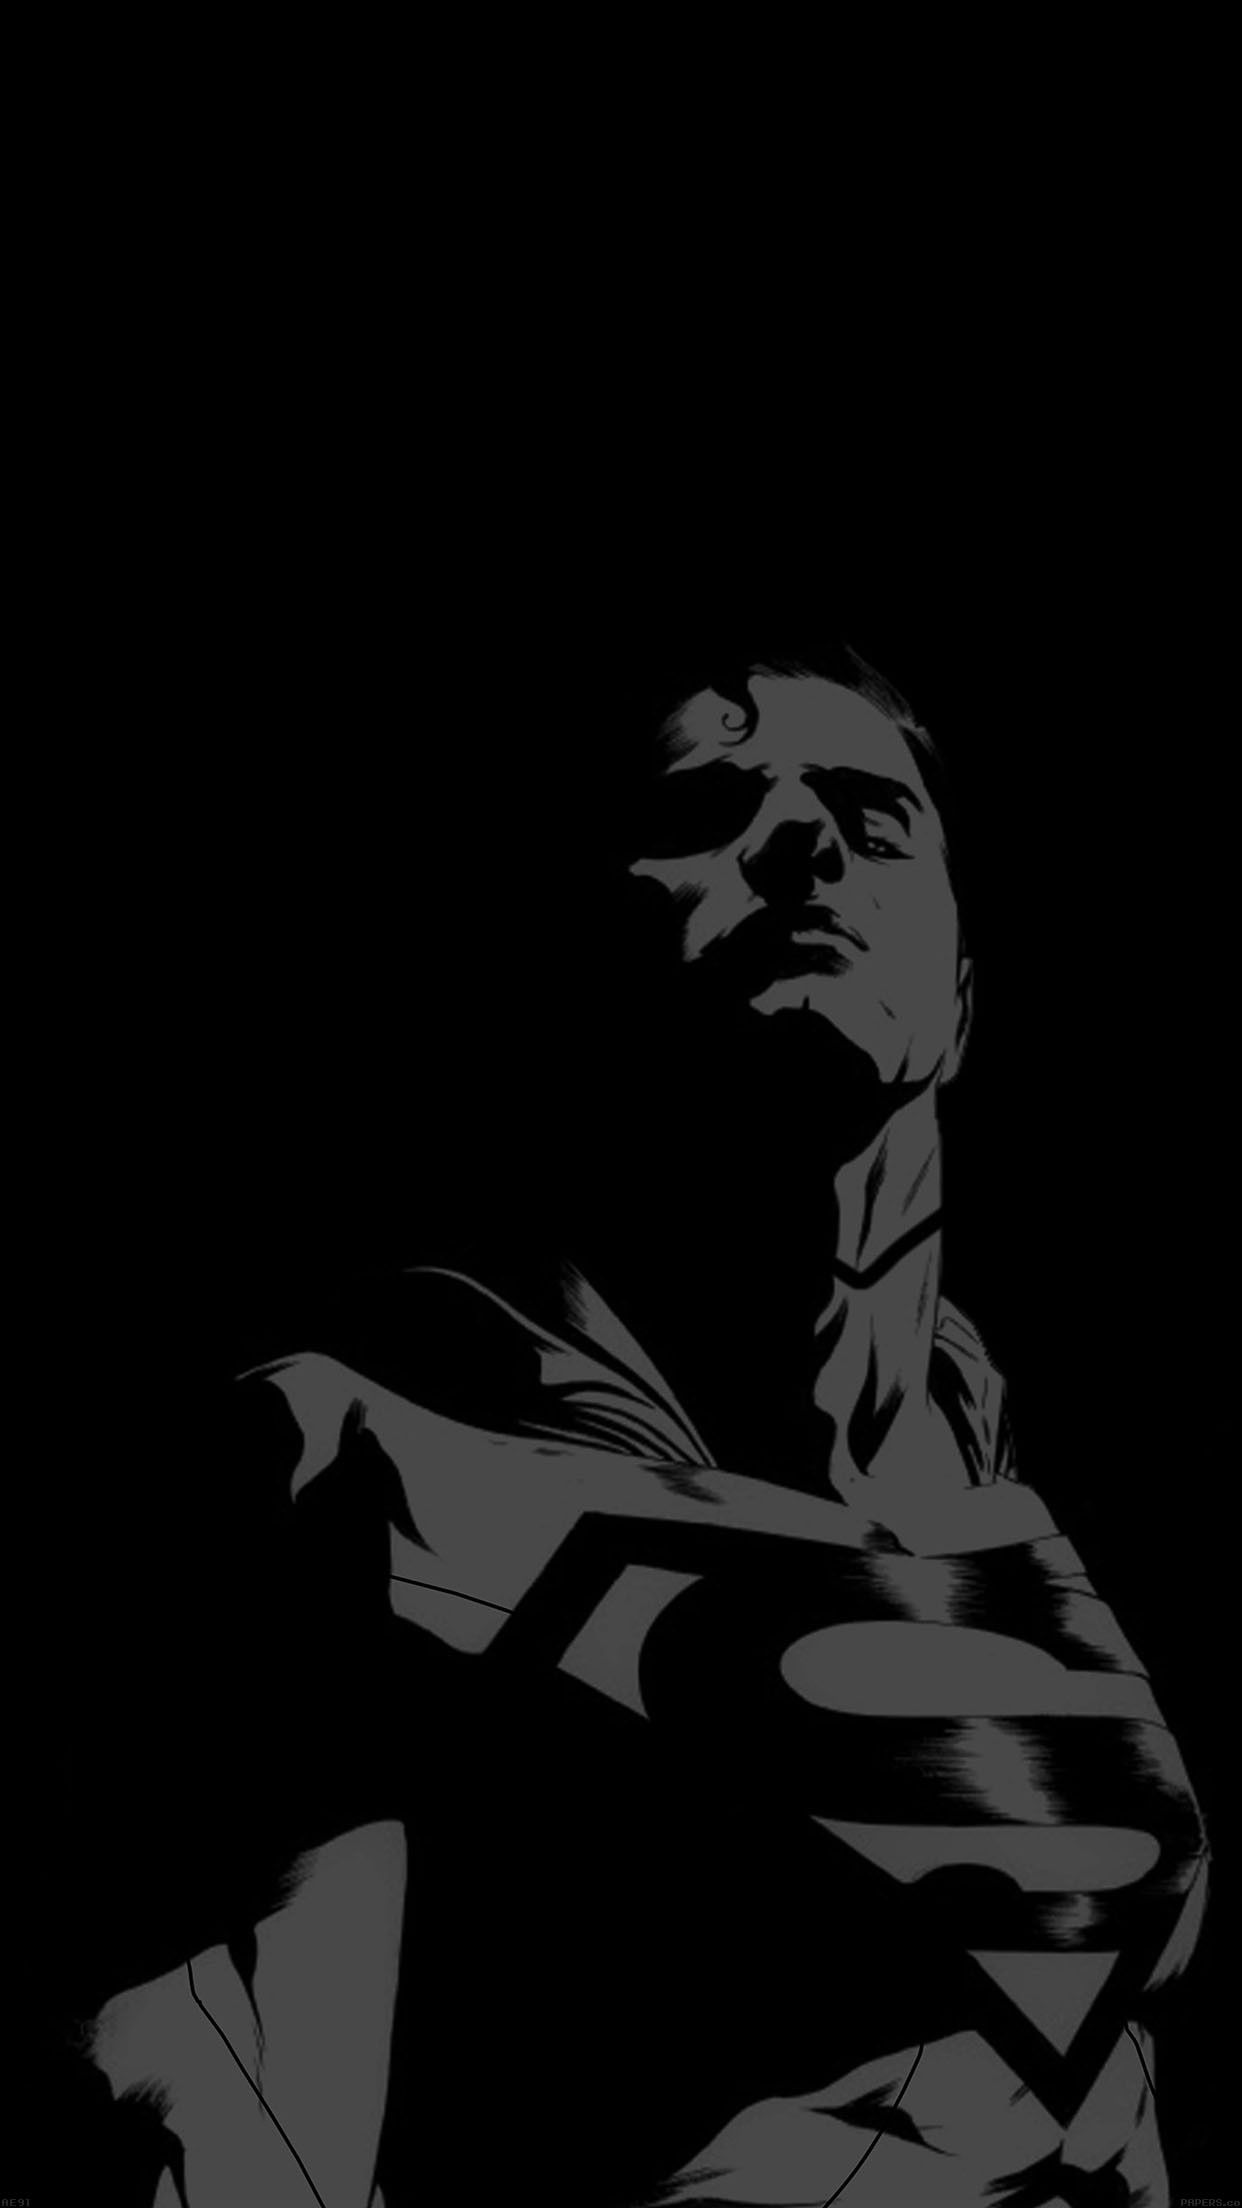 Man Of Steel Iphone Wallpapers Top Free Man Of Steel Iphone